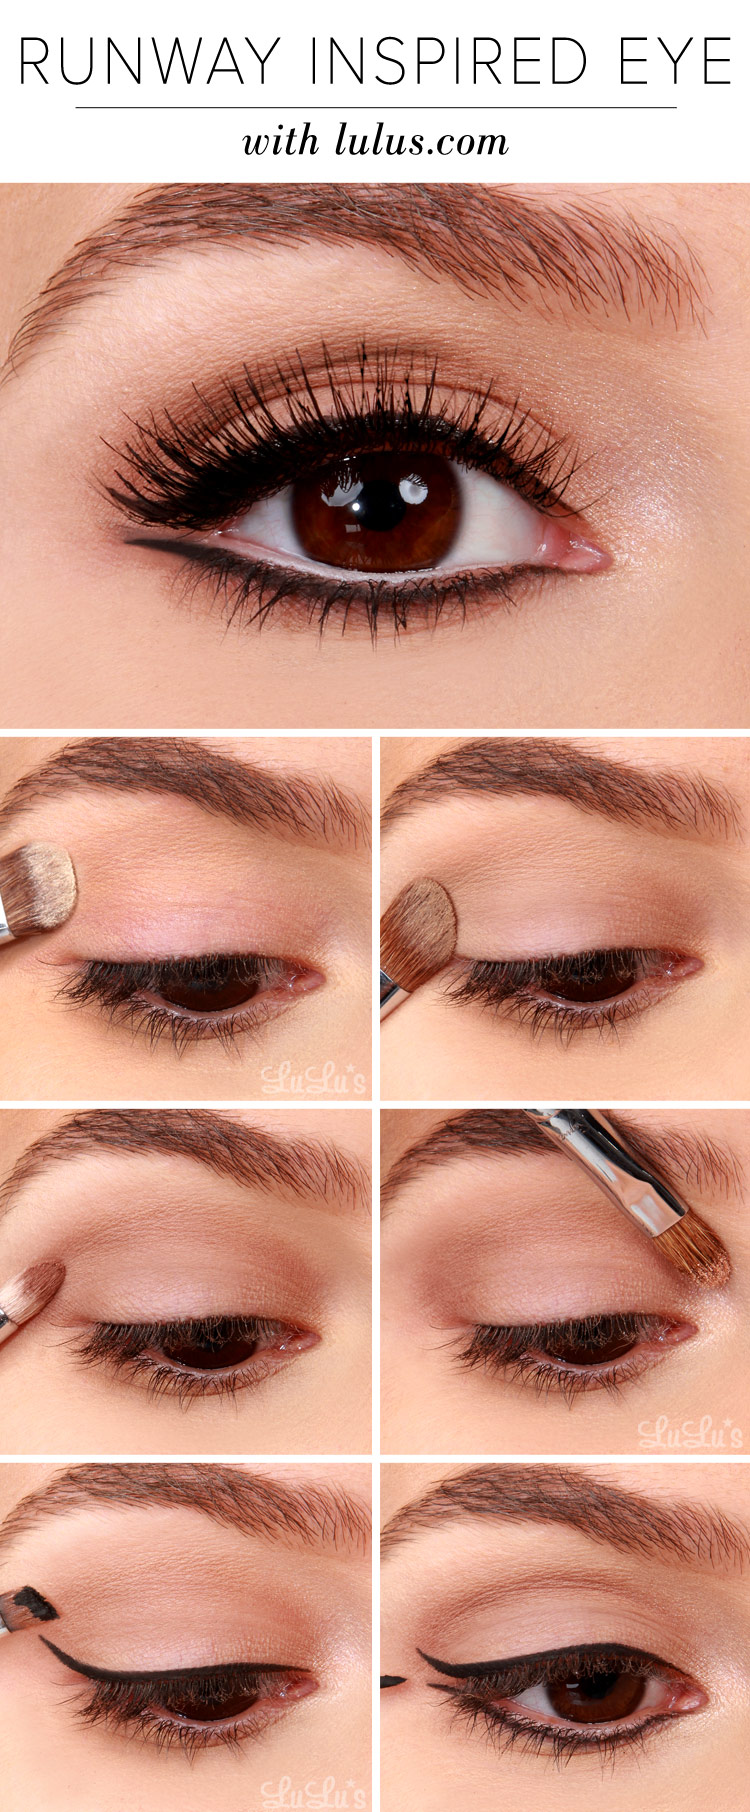 lulus how-to: runway inspired black eyeliner makeup tutorial - lulus